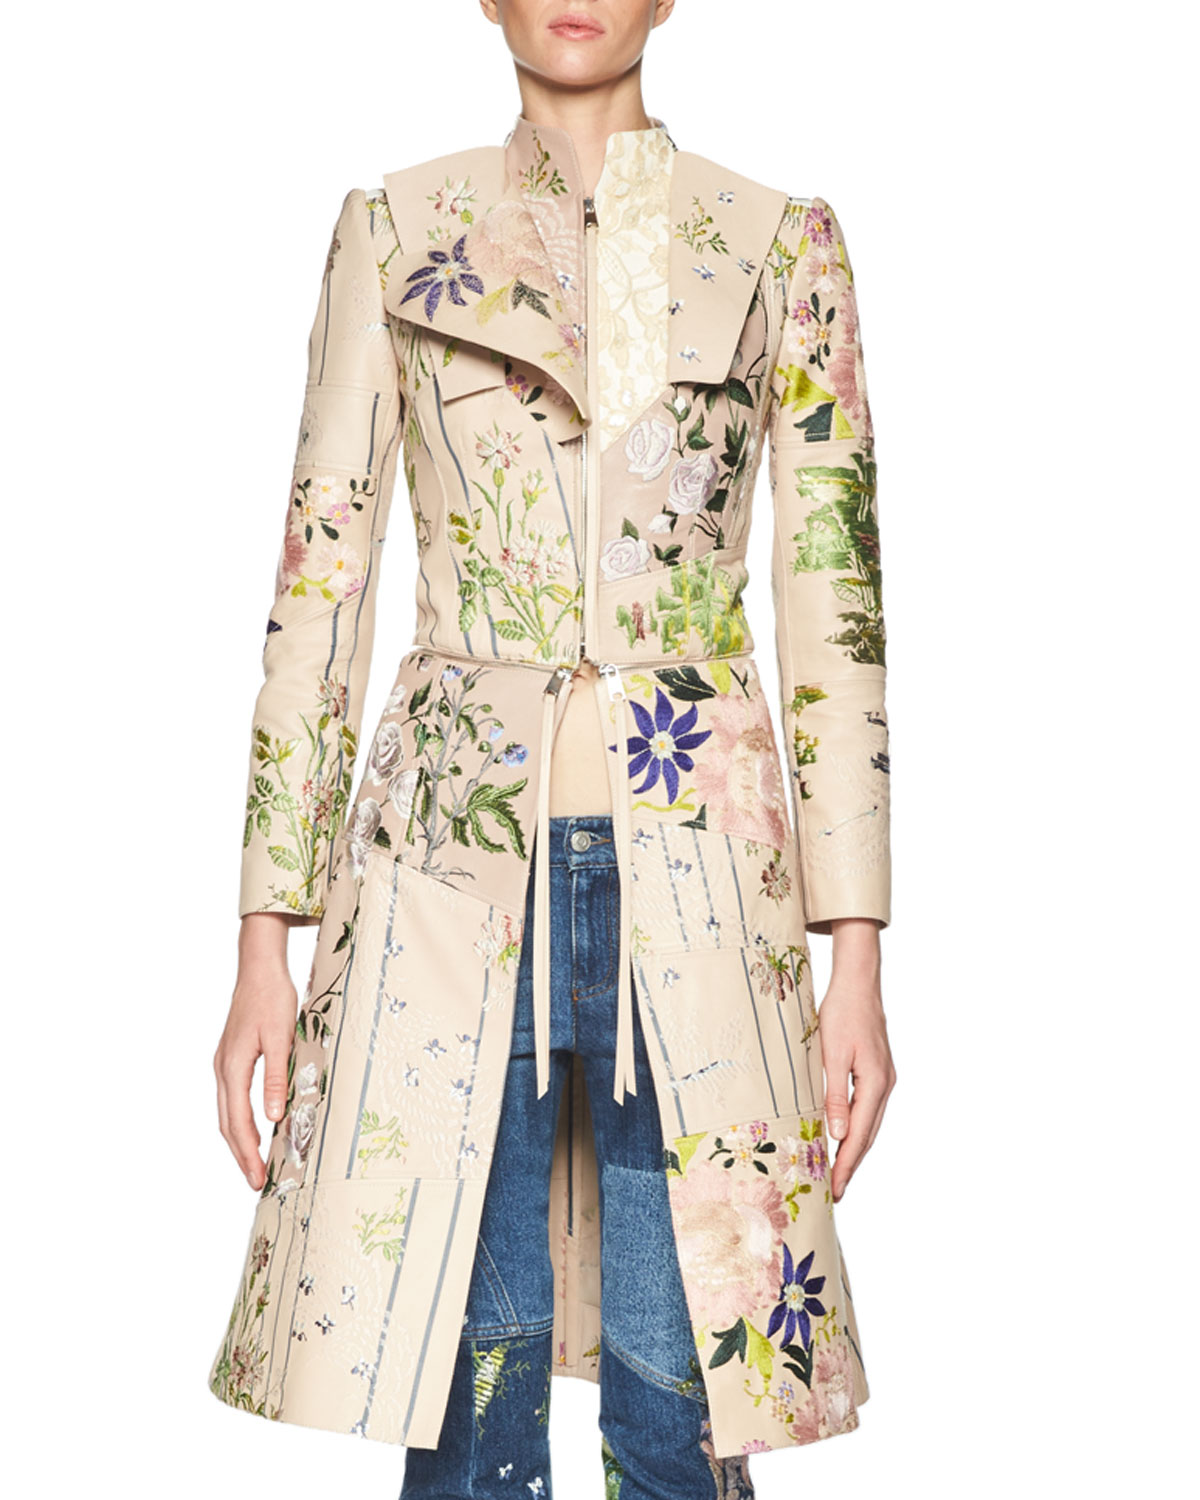 78386c1f8f5 Alexander McQueen Floral-Embroidered Leather Zip Jacket